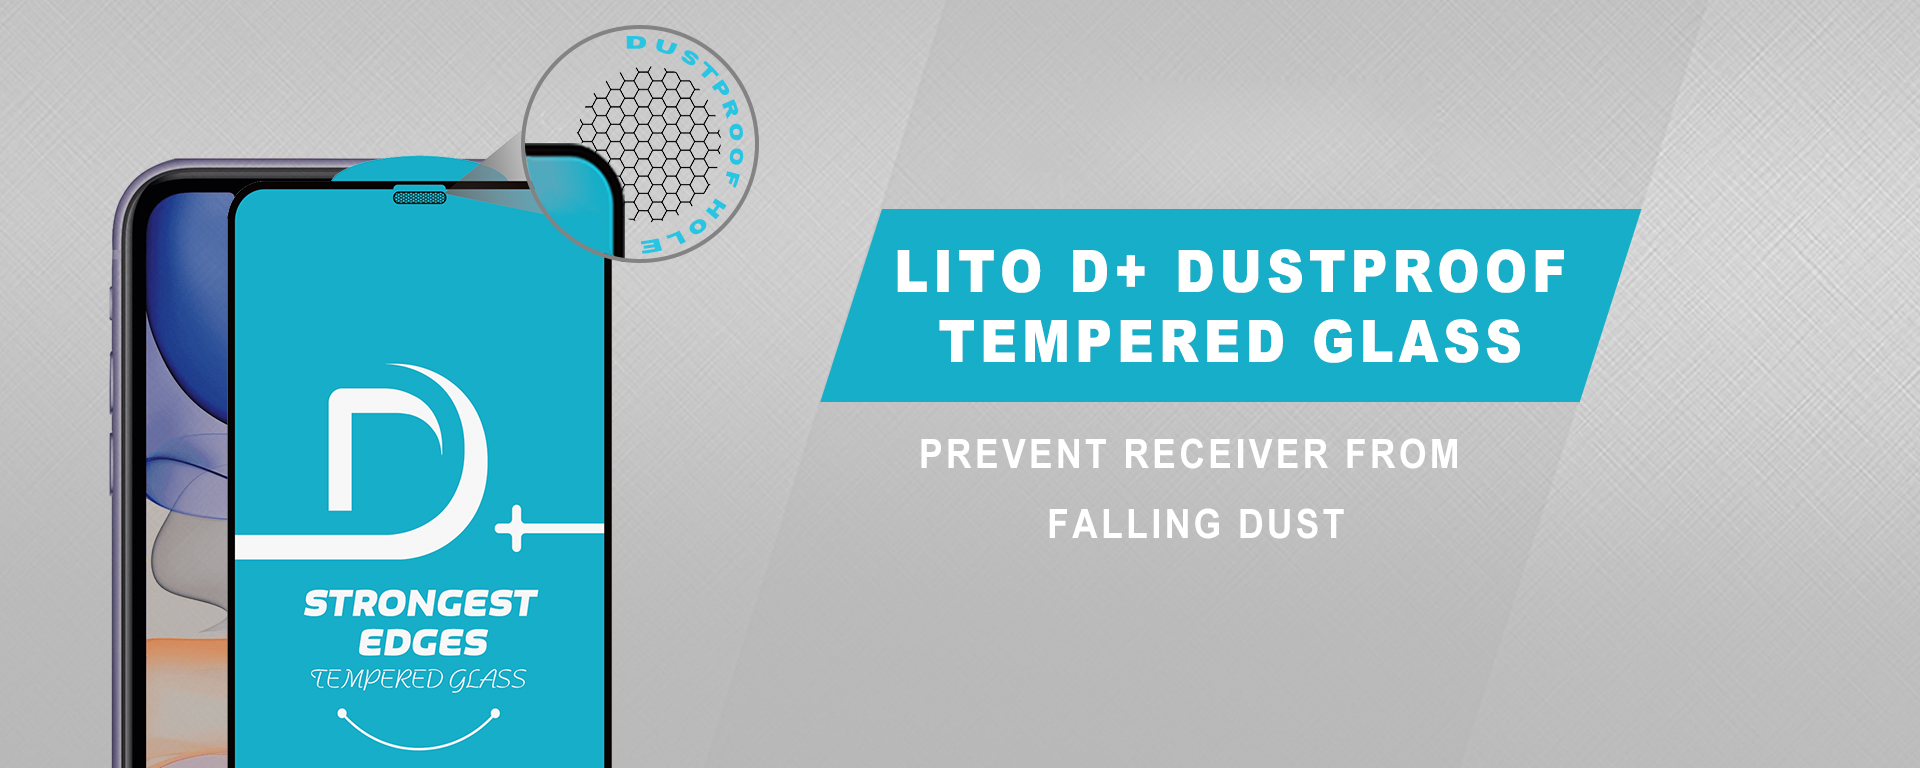 Lito D+ Dustproof Tempered Glass Screen Protector